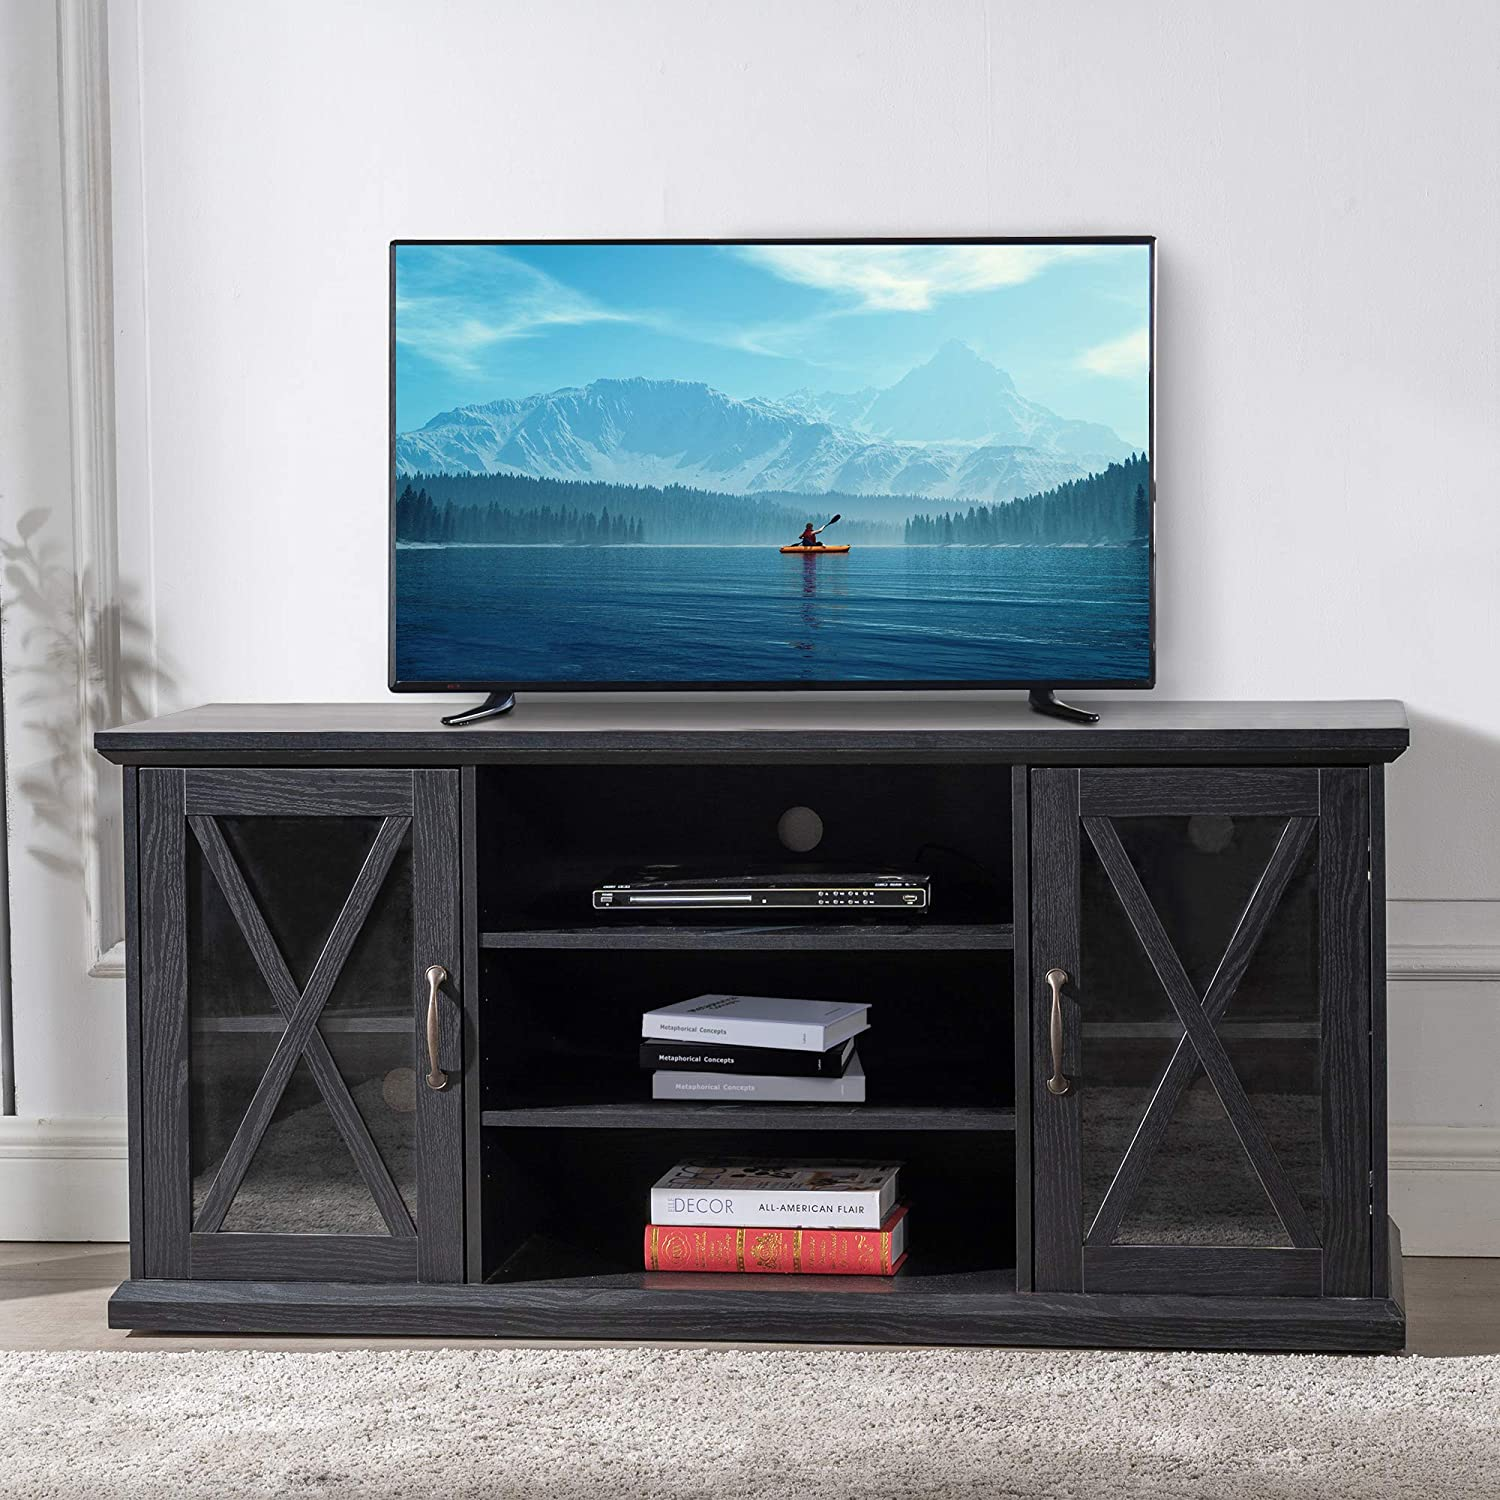 Good Gracious Tv Stand Up To 65 Flat Screen Living Room Or Bedroom With Storage Shelves Entertainment Center Black Furniture Decor